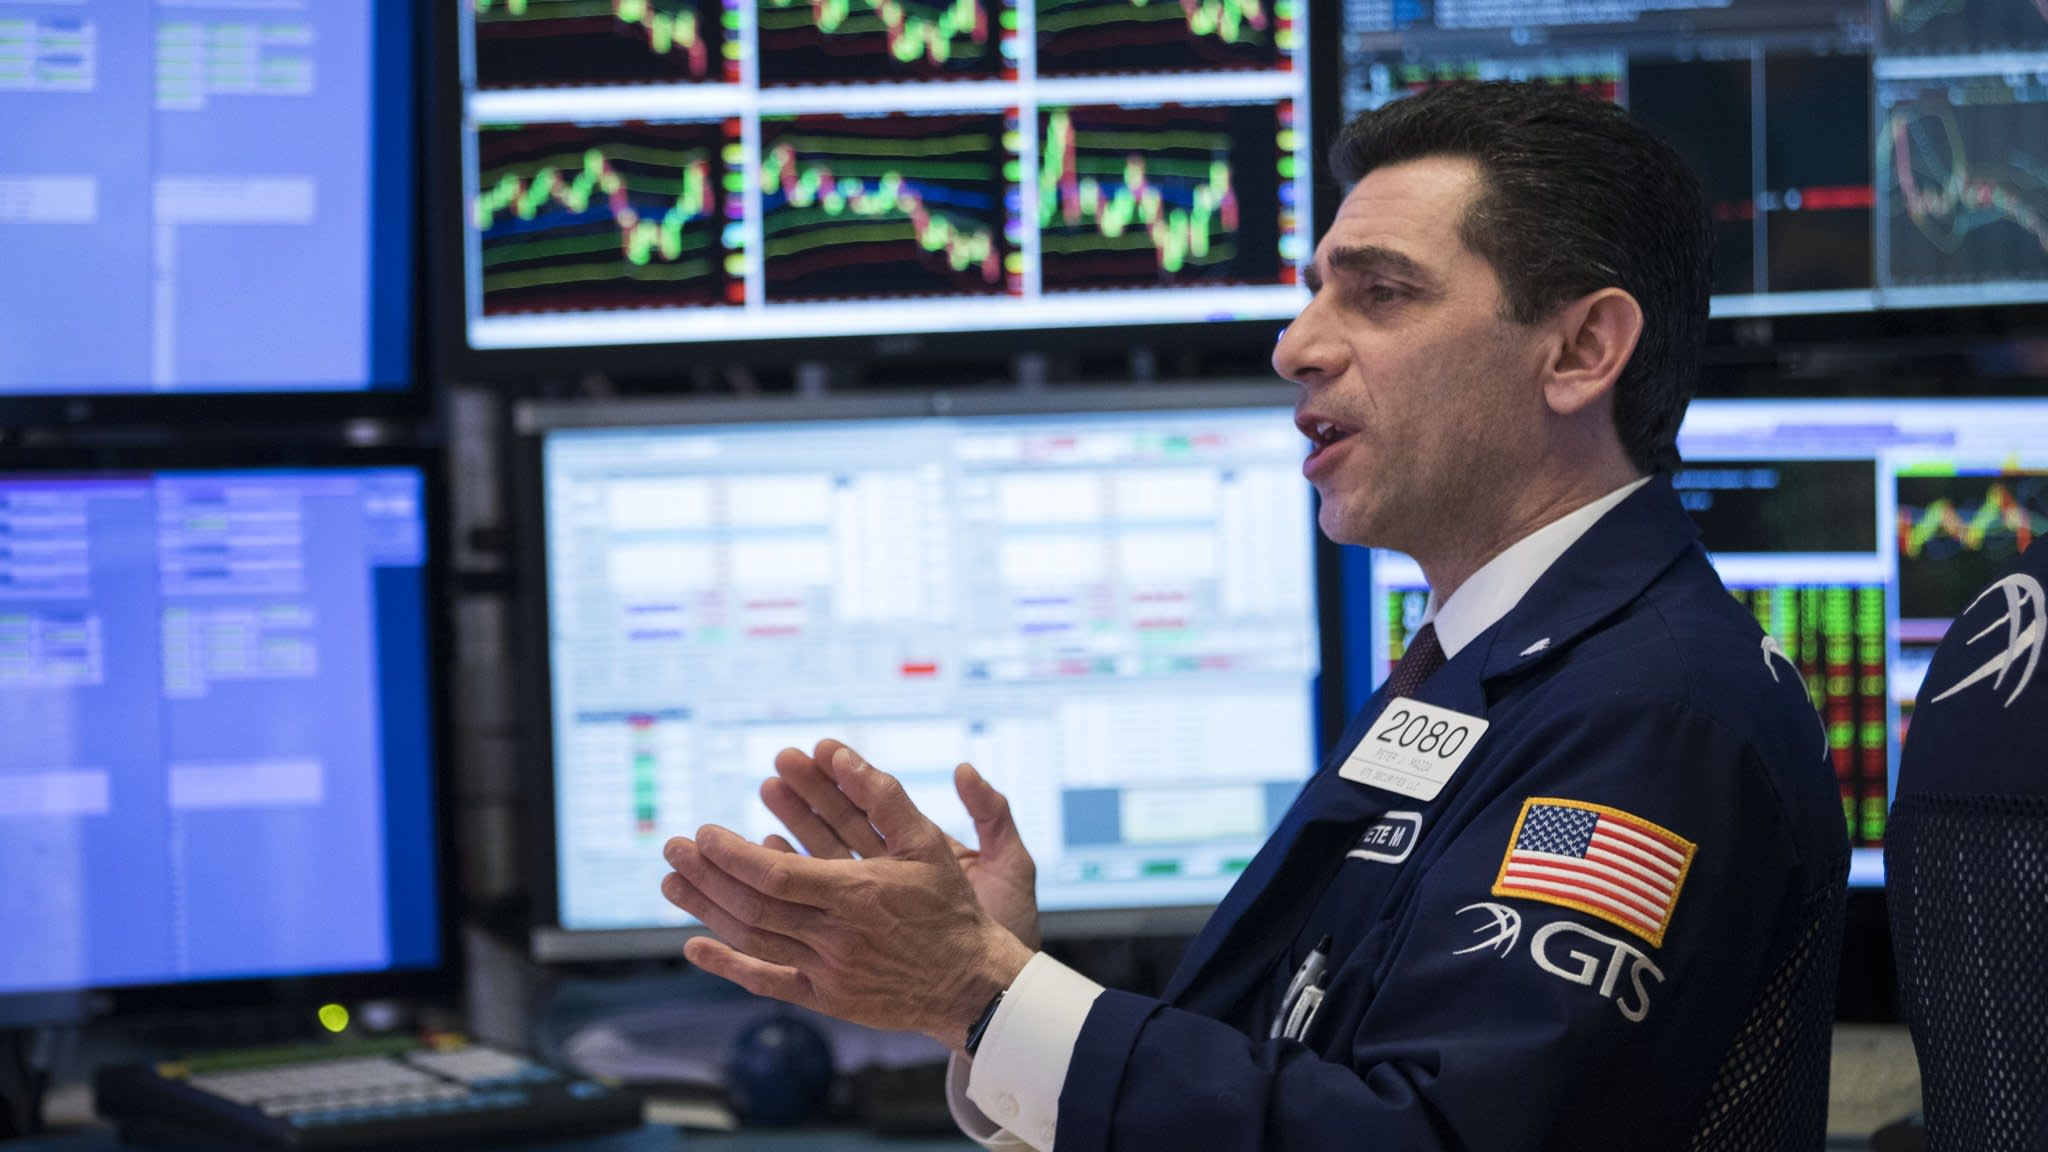 Chicago open-outcry trading floor launch wins approval | Financial Times